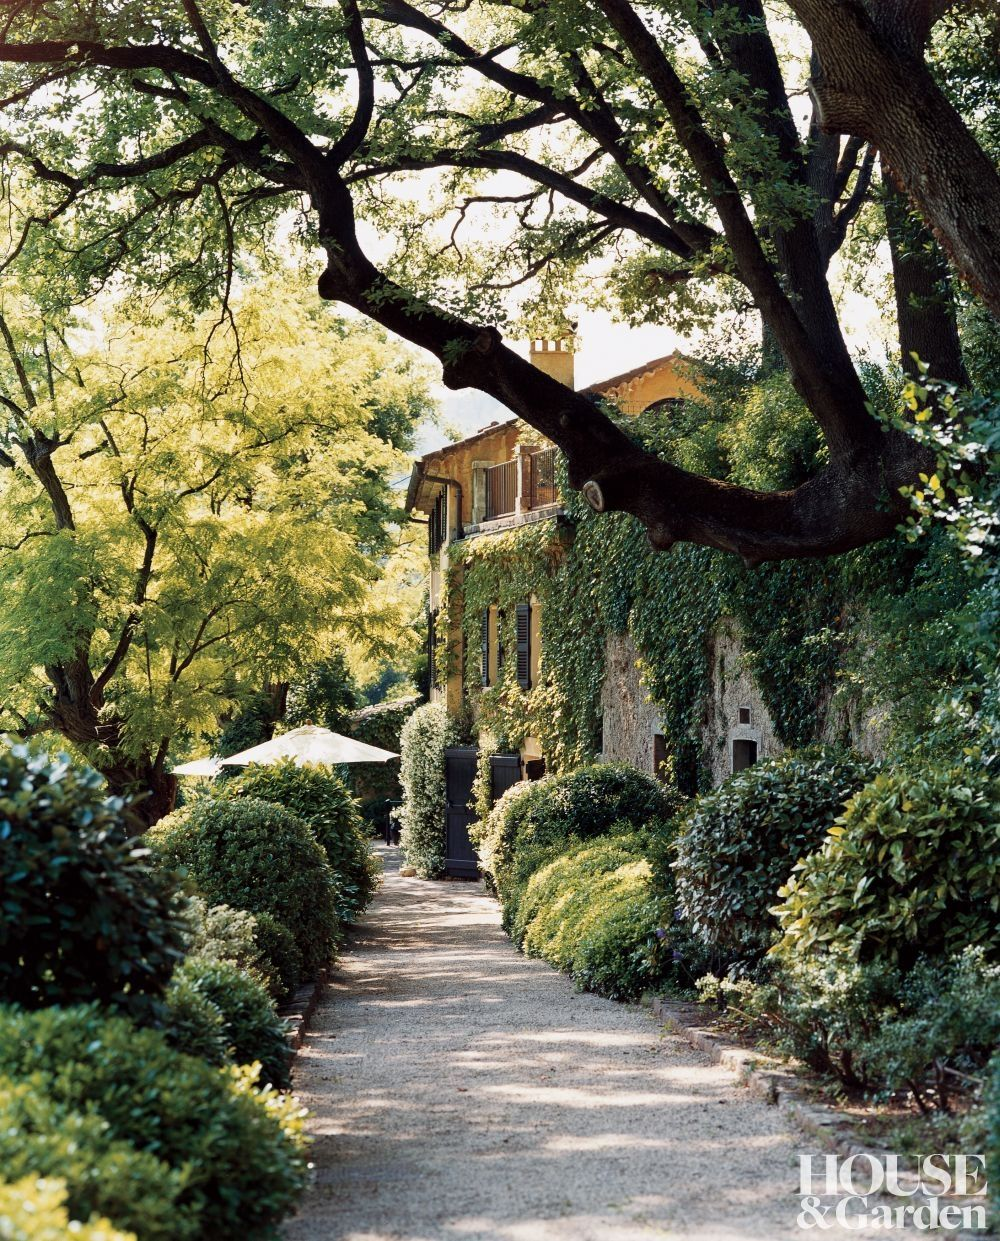 Mediterranean Exterior Of Home With Pathway Fountain: A Path Leads To Domaine Du Sault Rustic